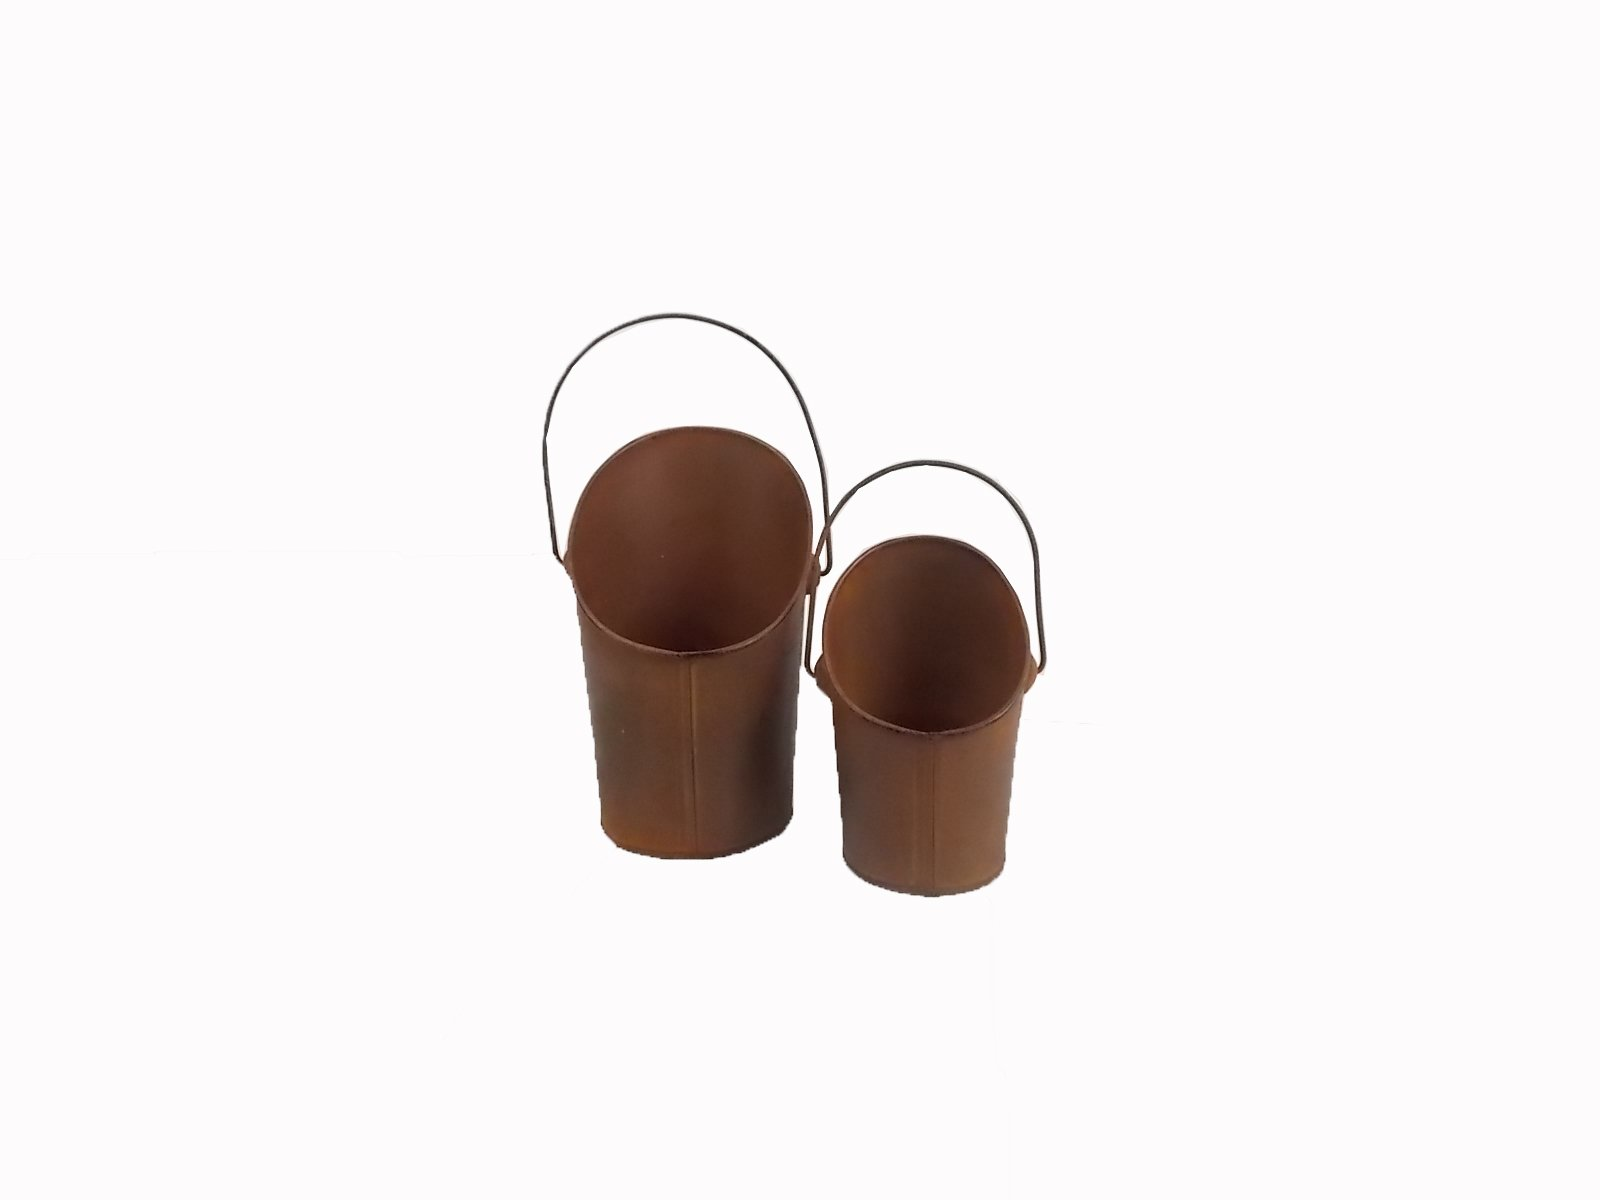 Craft Outlet Rustic Bucket, 5 by 8-Inch and 4 by 6-Inch, Set of 2